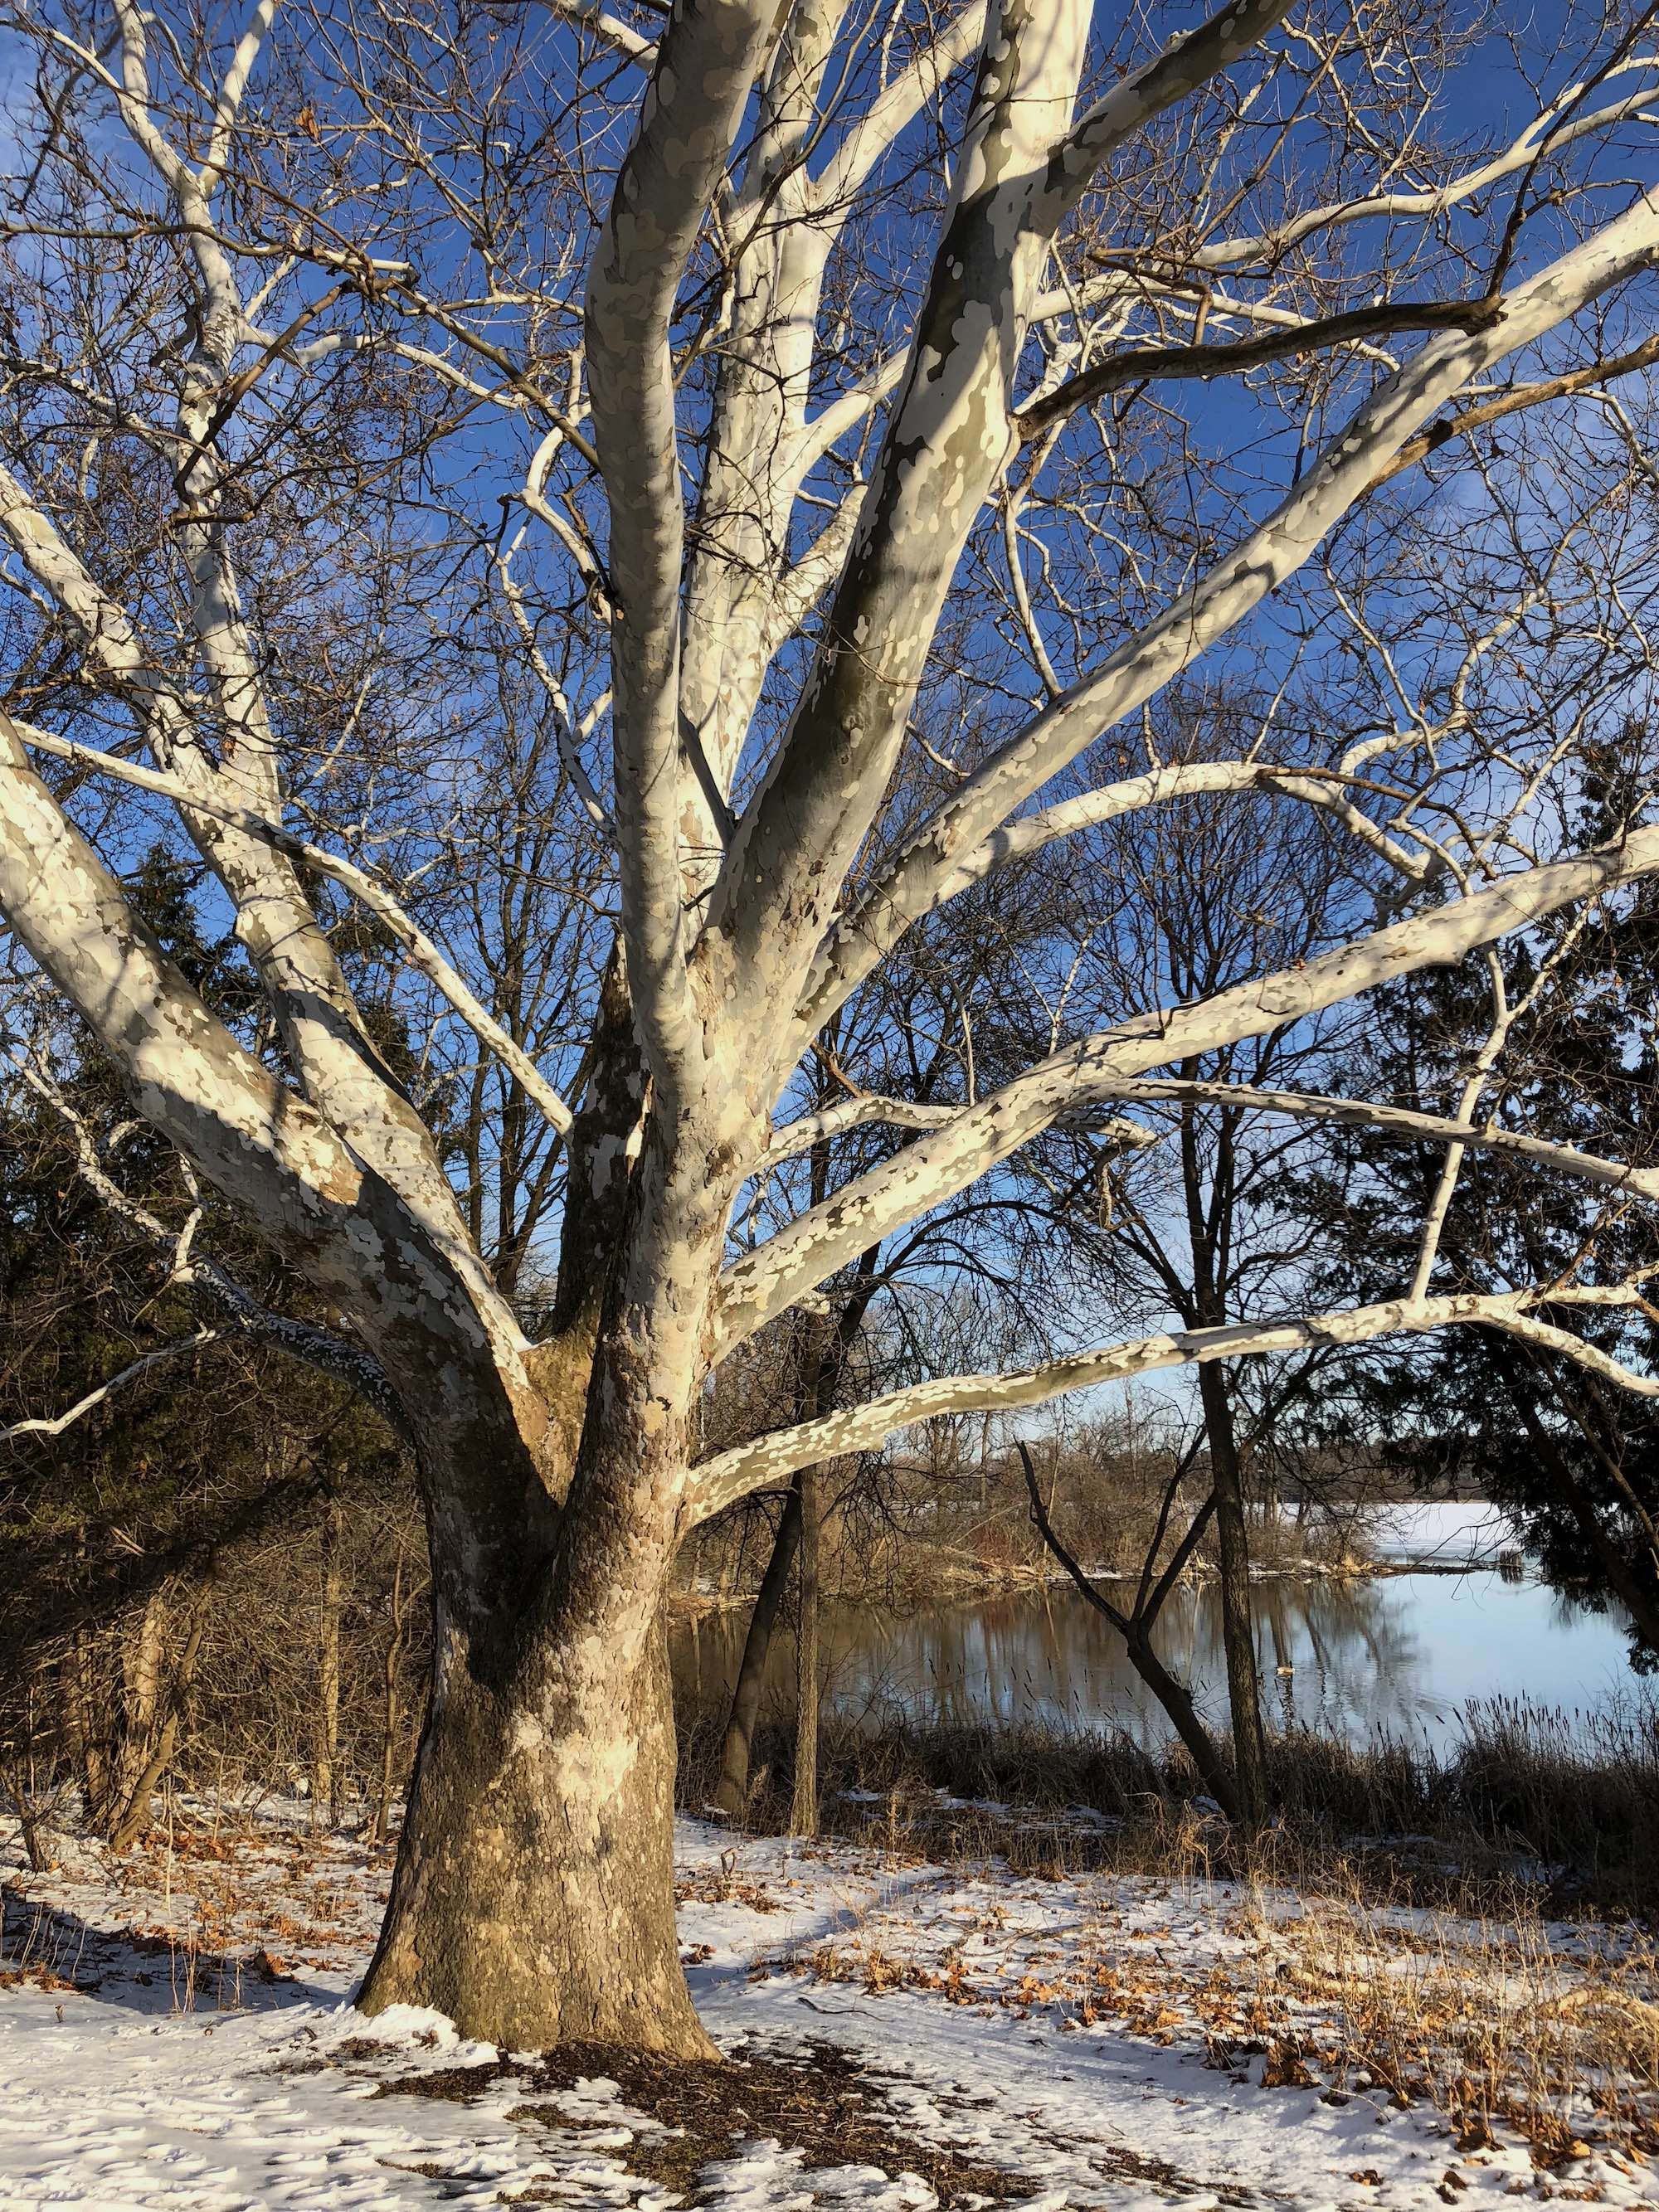 Sycamore tree between Ho-Nee-Um Pond and Arbor Drive on north shore of Lake Wingra on March 9, 2018.